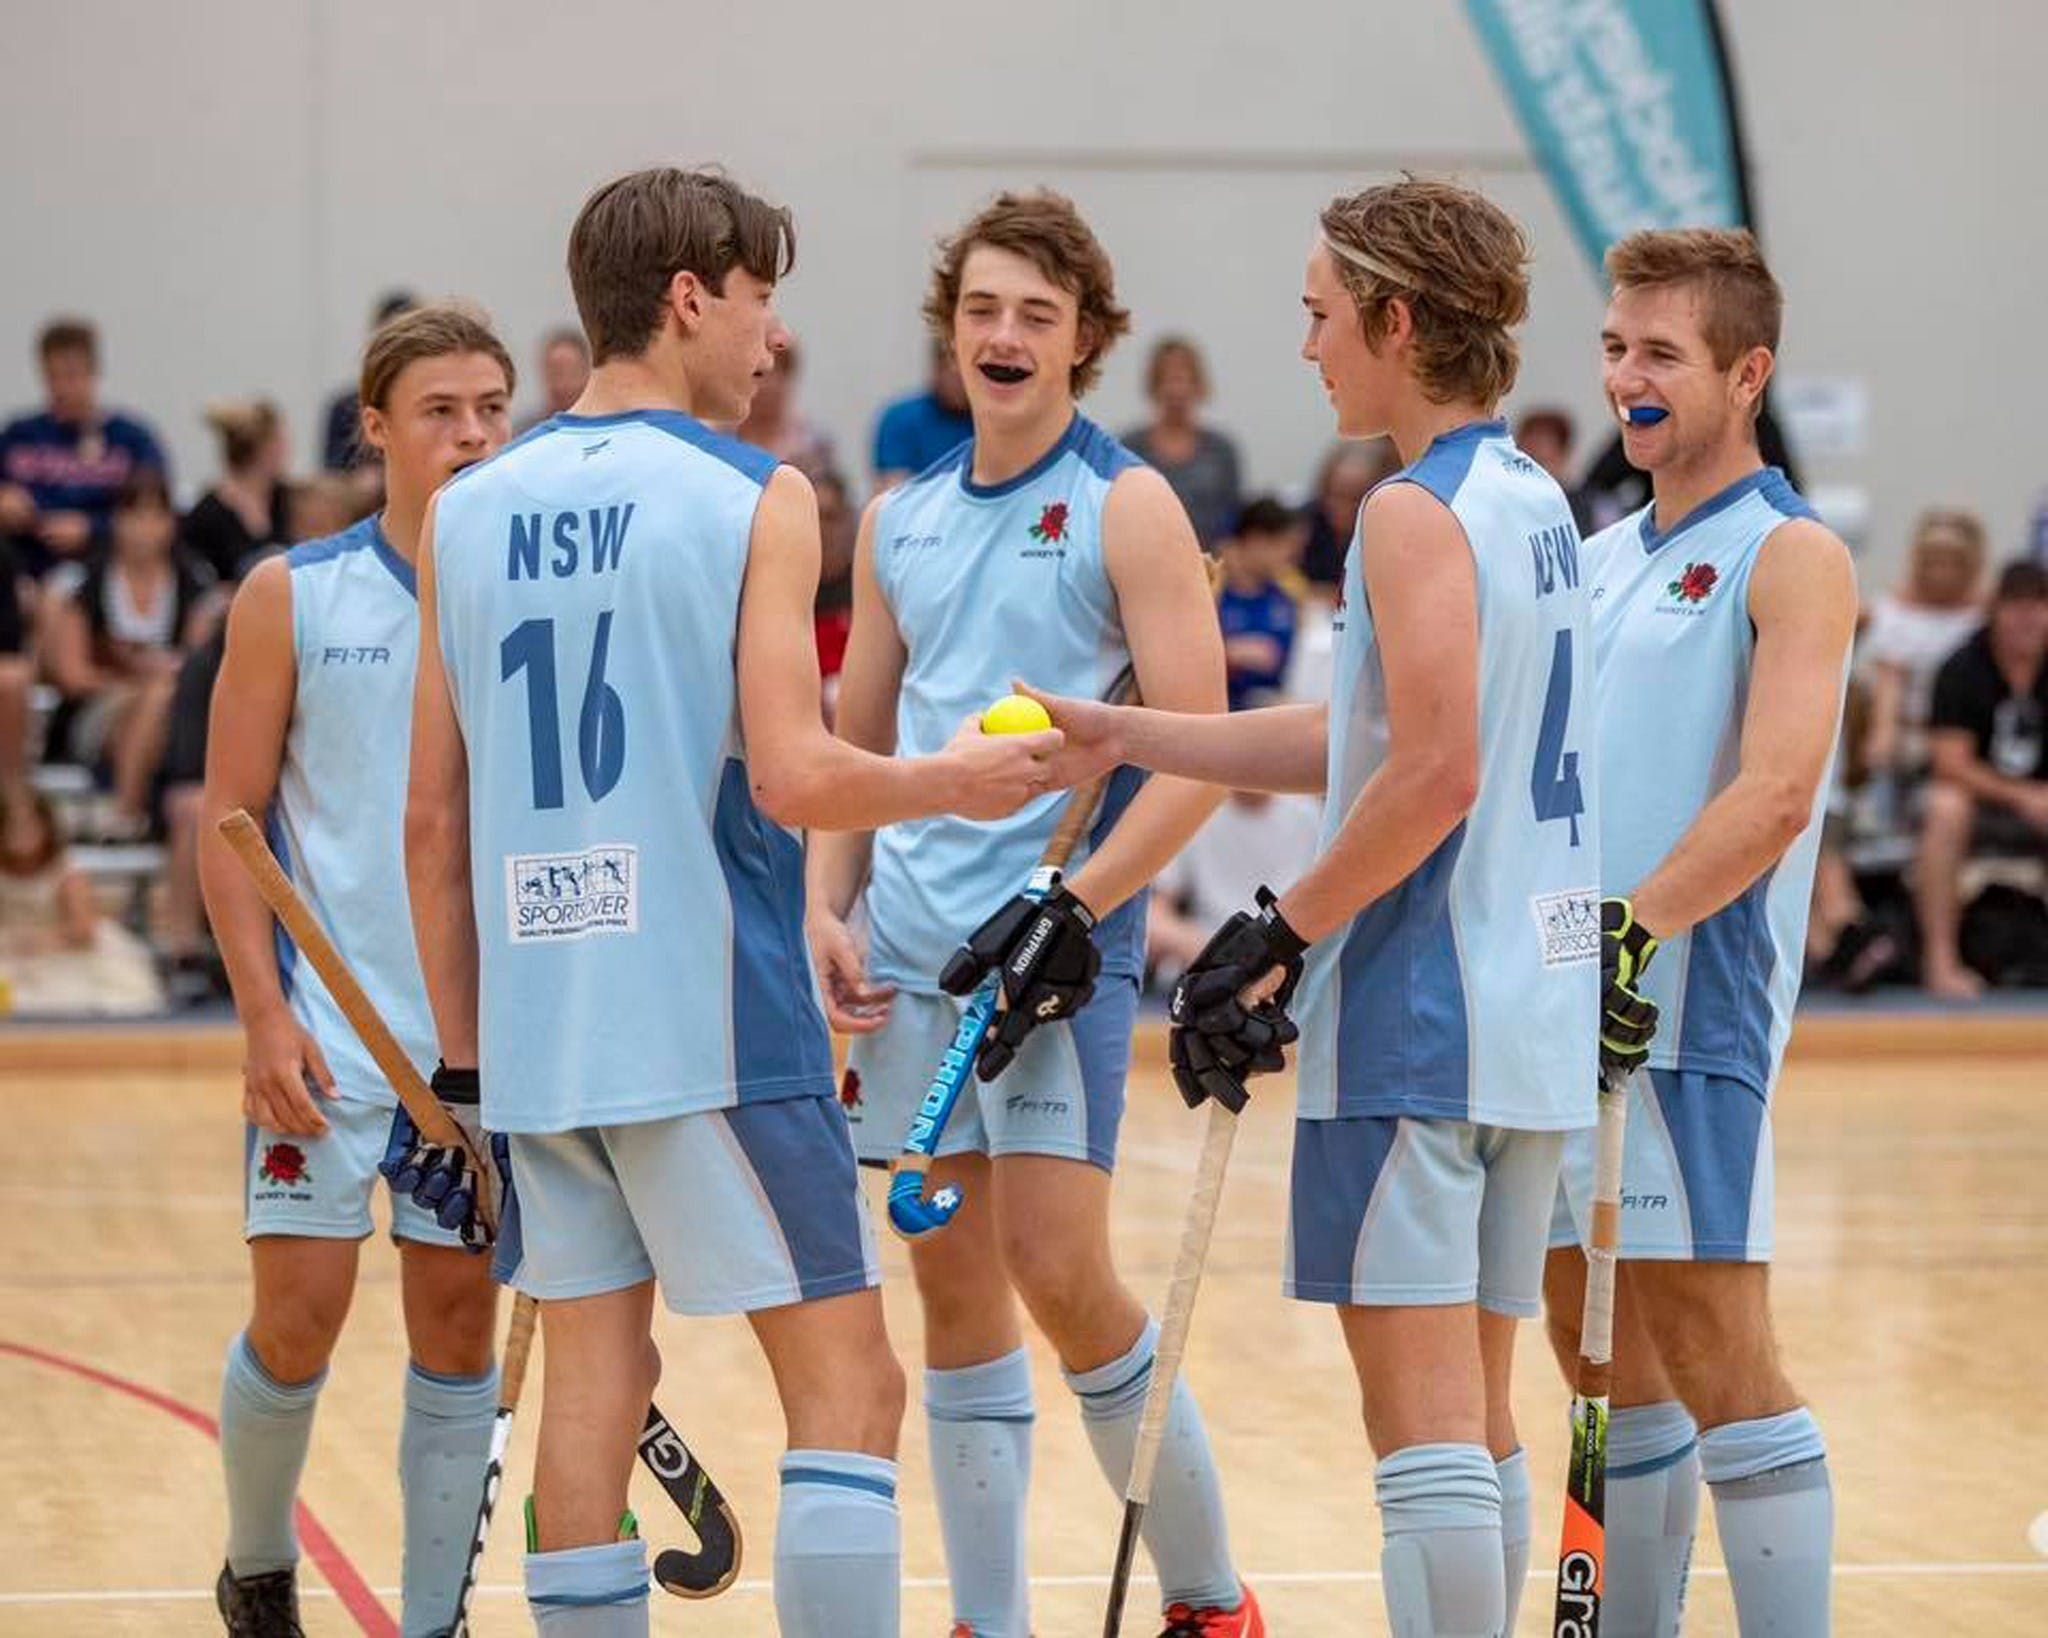 Hockey NSW Indoor State Championship  Open Men - Accommodation Tasmania